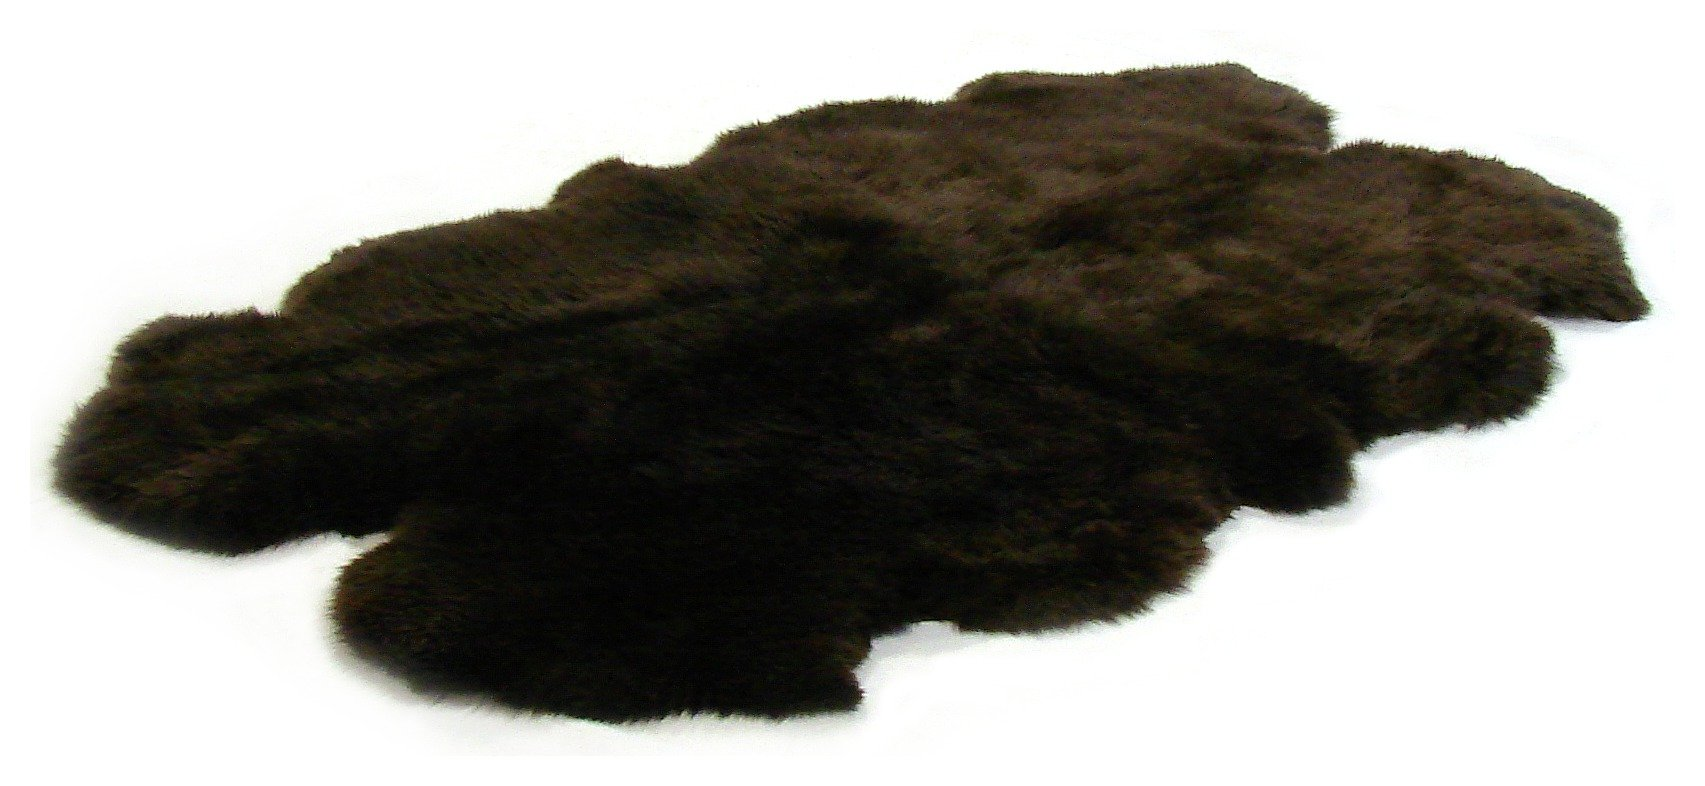 Image of Bowron Sheepskin Longwool Rug - 110x180cm - Chocolate